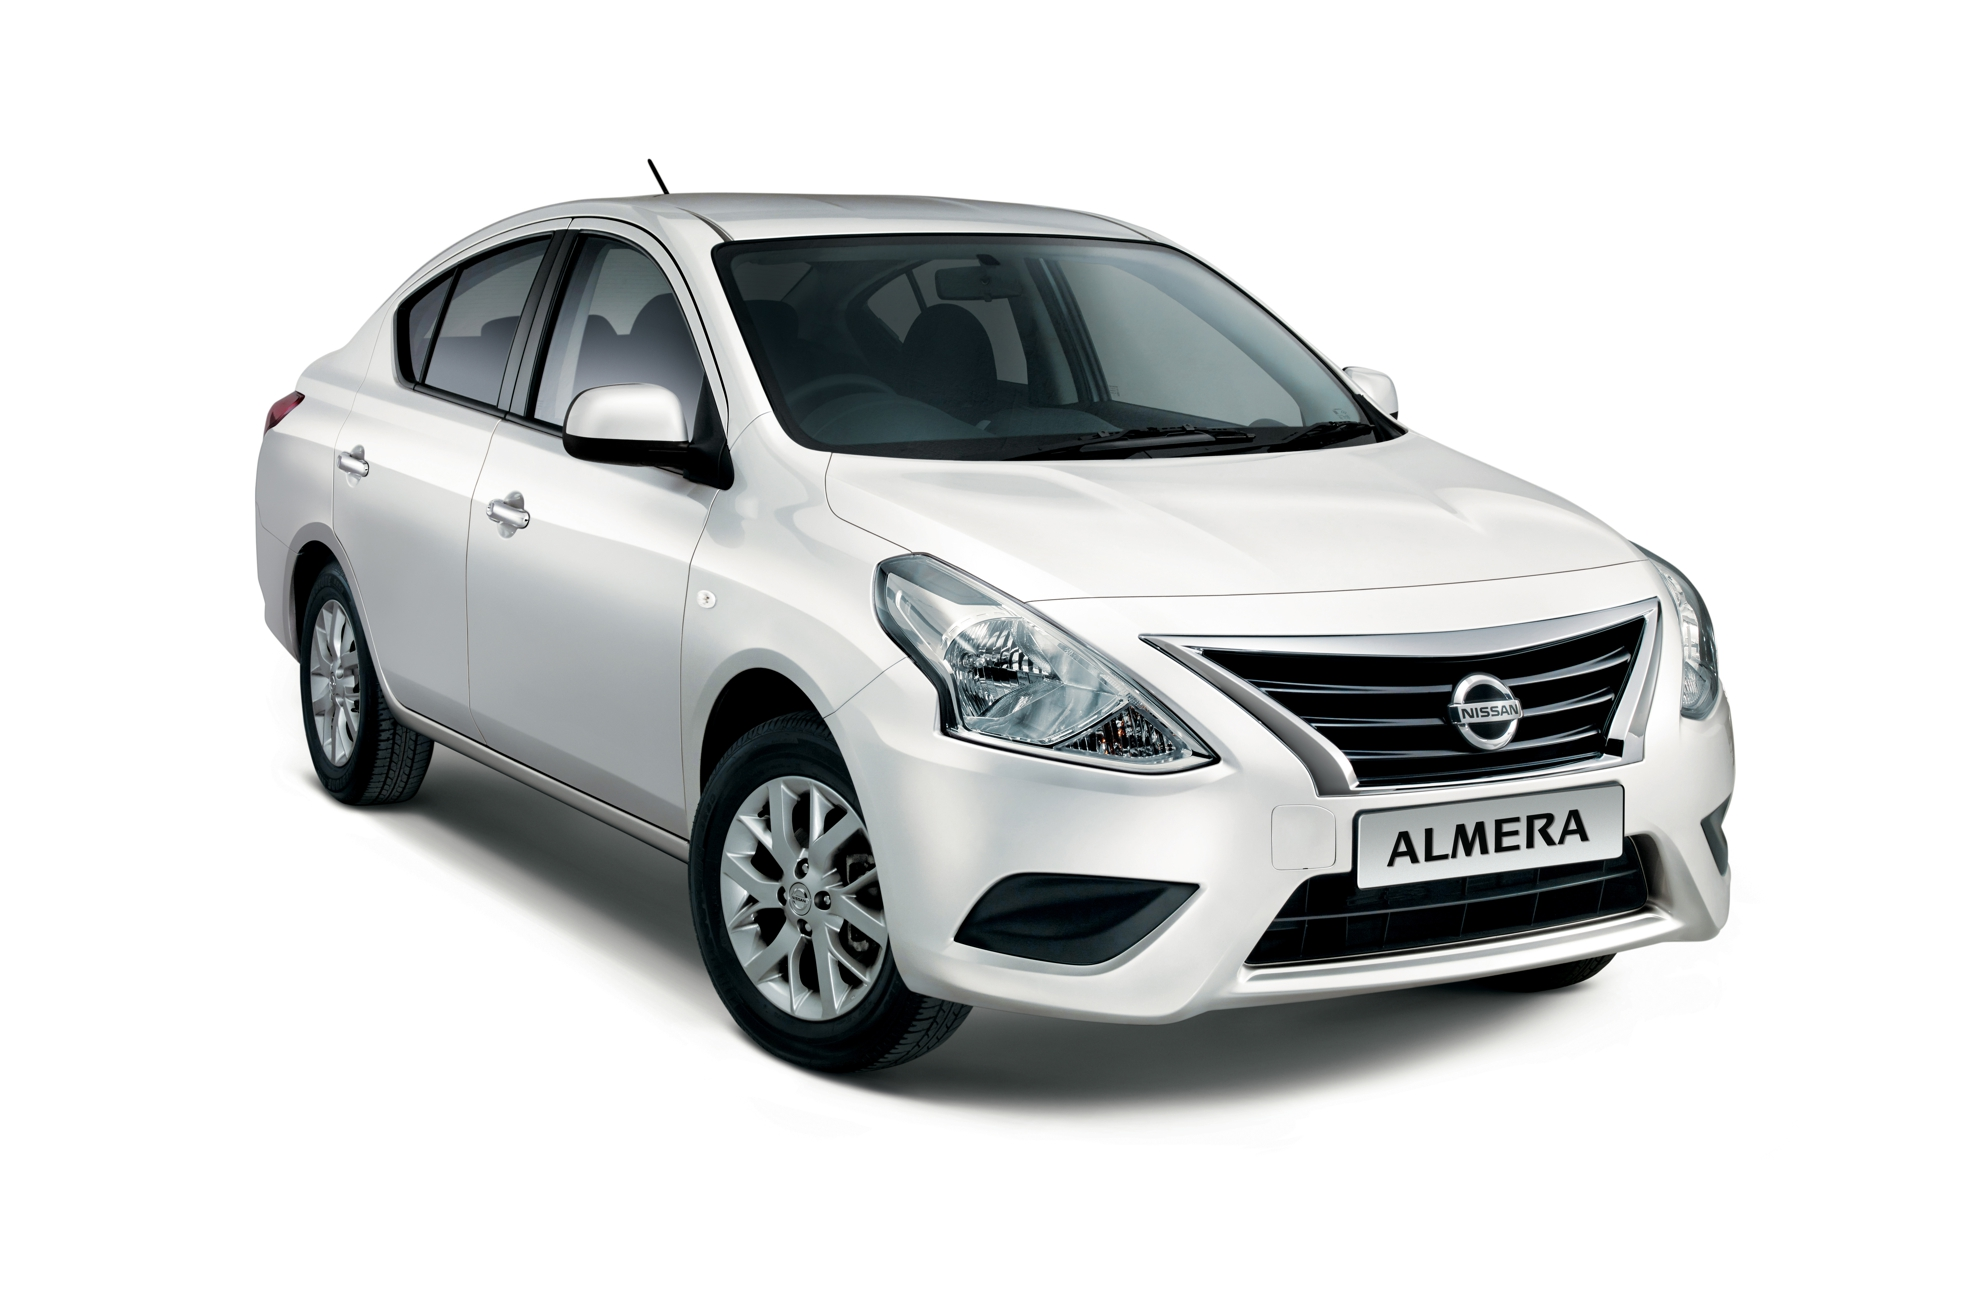 nissan almera ahead of the pack with new features. Black Bedroom Furniture Sets. Home Design Ideas